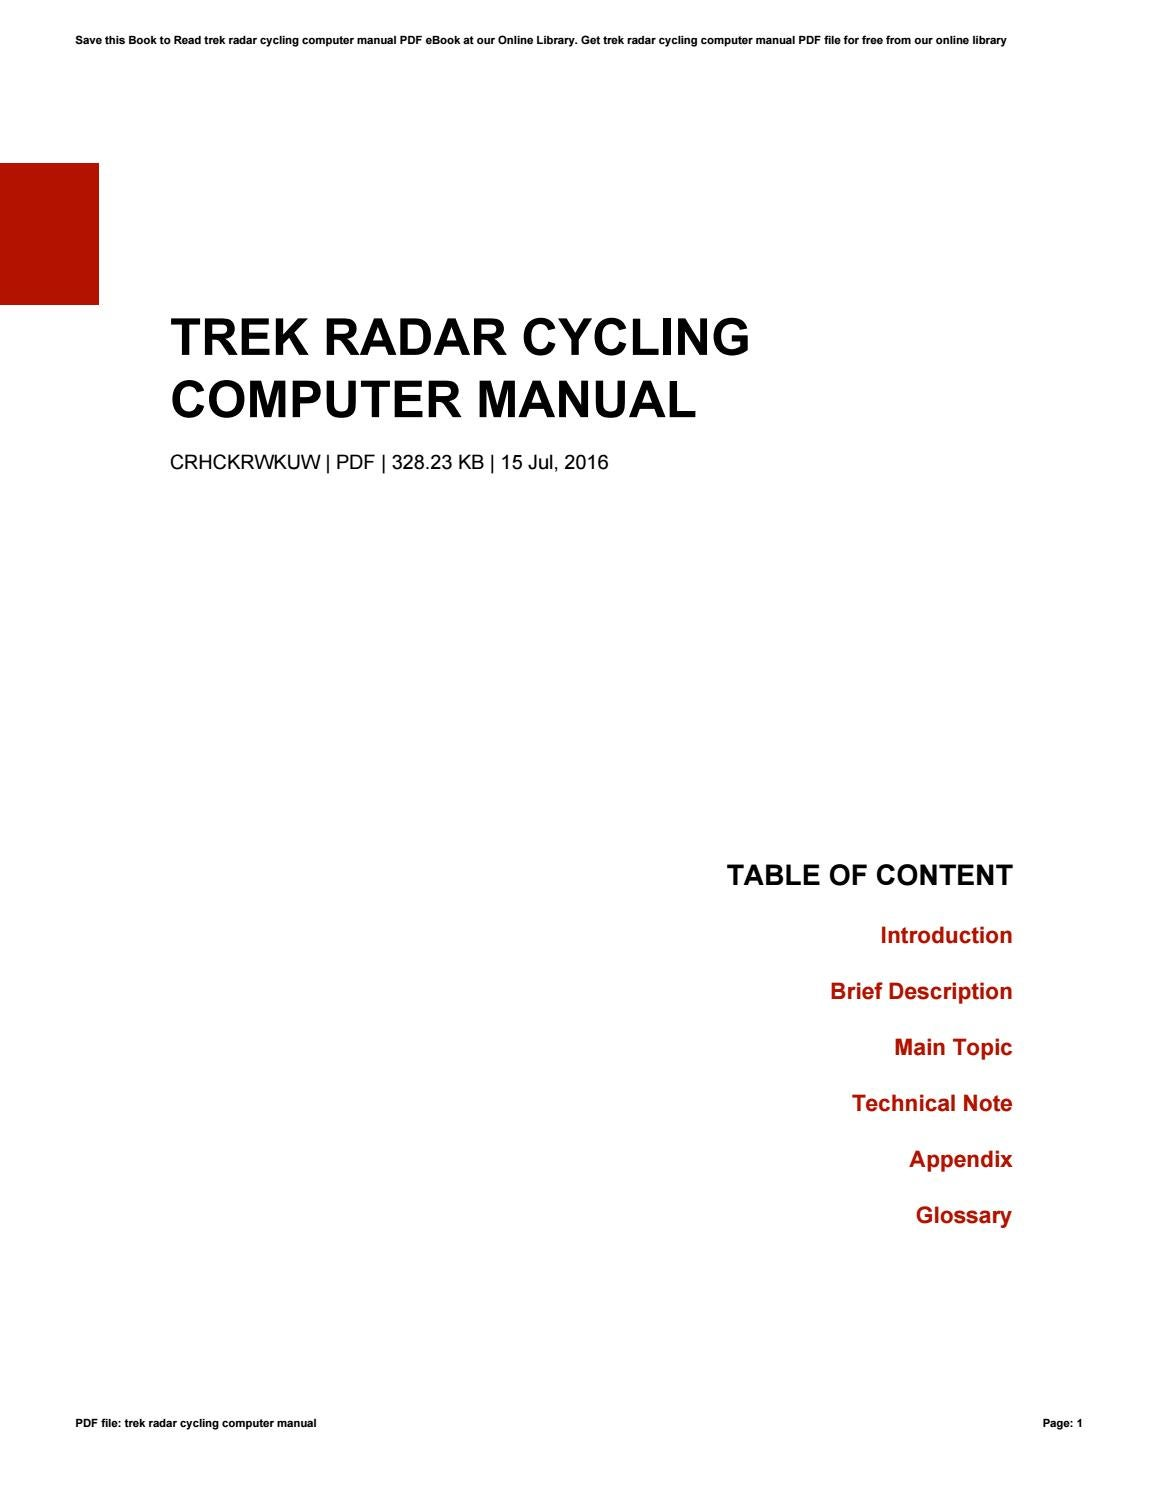 Trek 15 manual array trek radar cycling computer manual by timothyeversole2658 issuu rh issuu fandeluxe Images